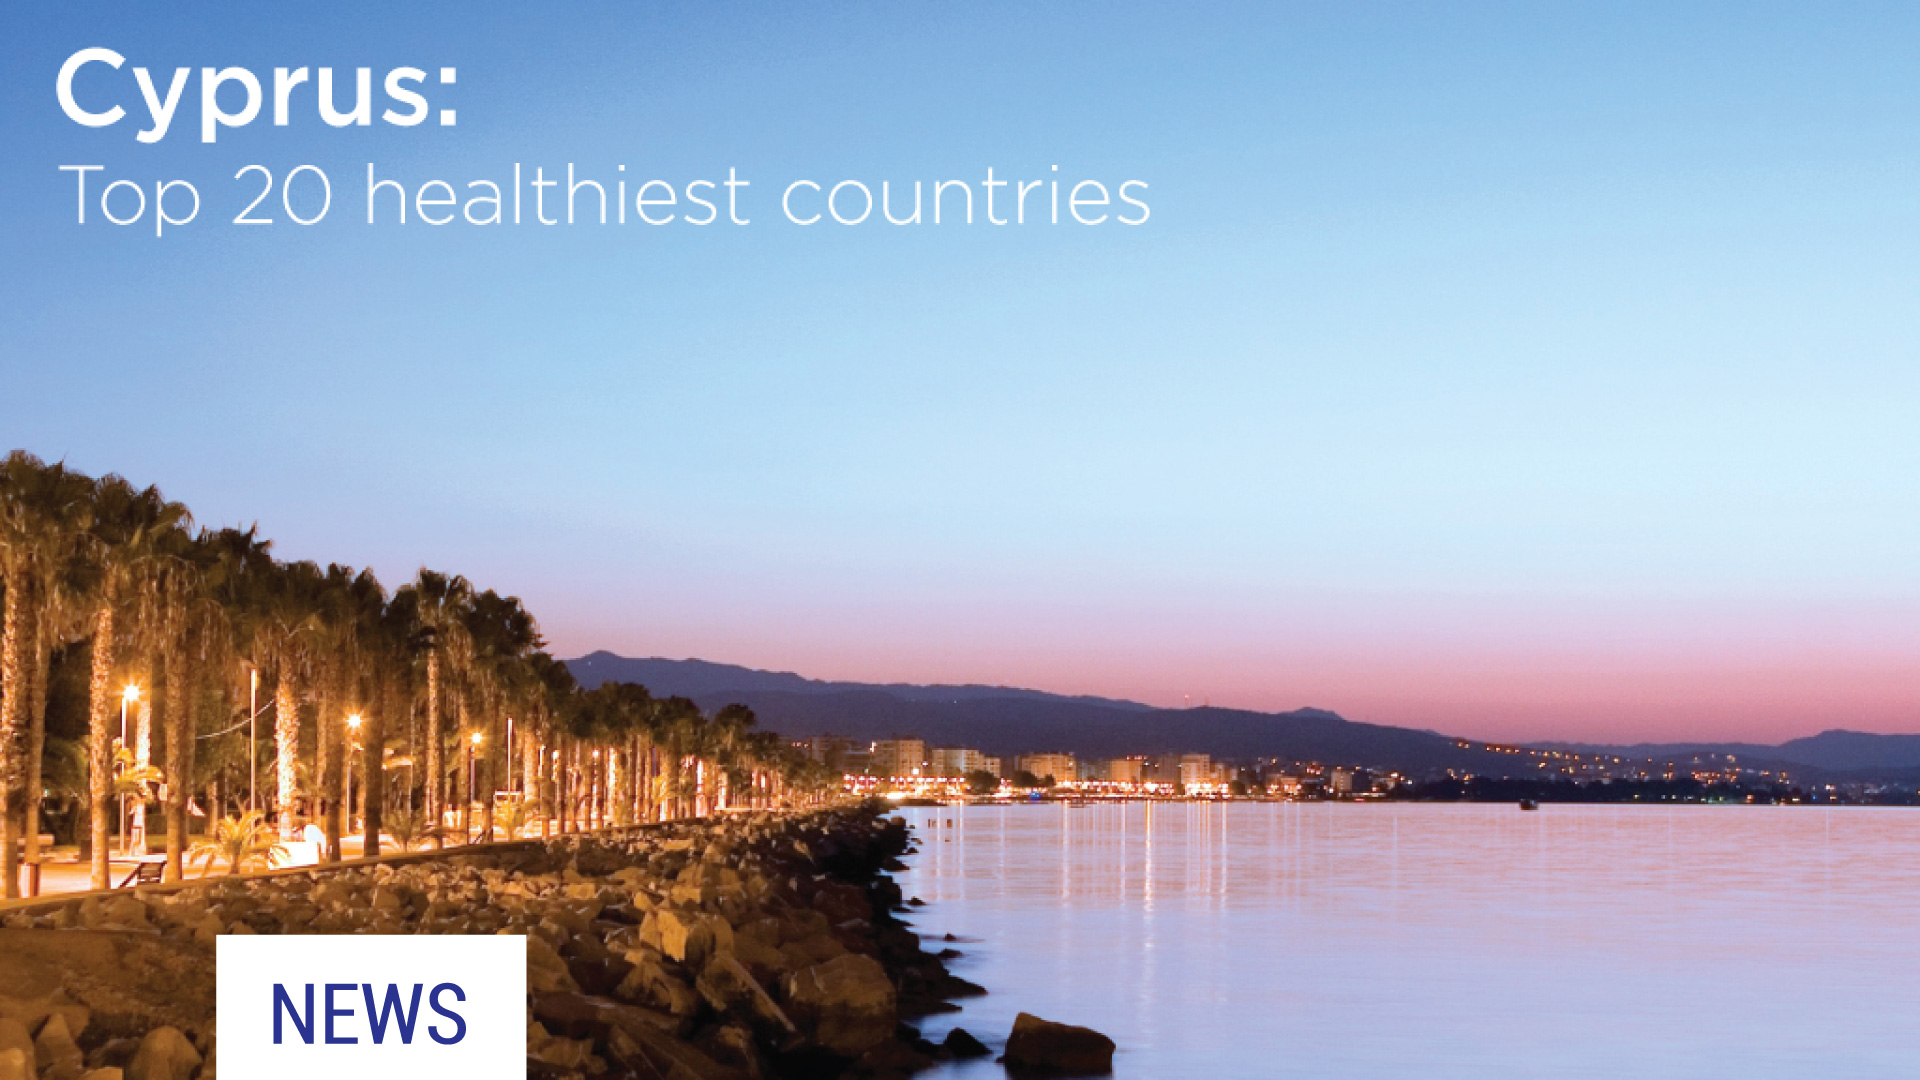 Cyprus: One of the healthiest countries to live in